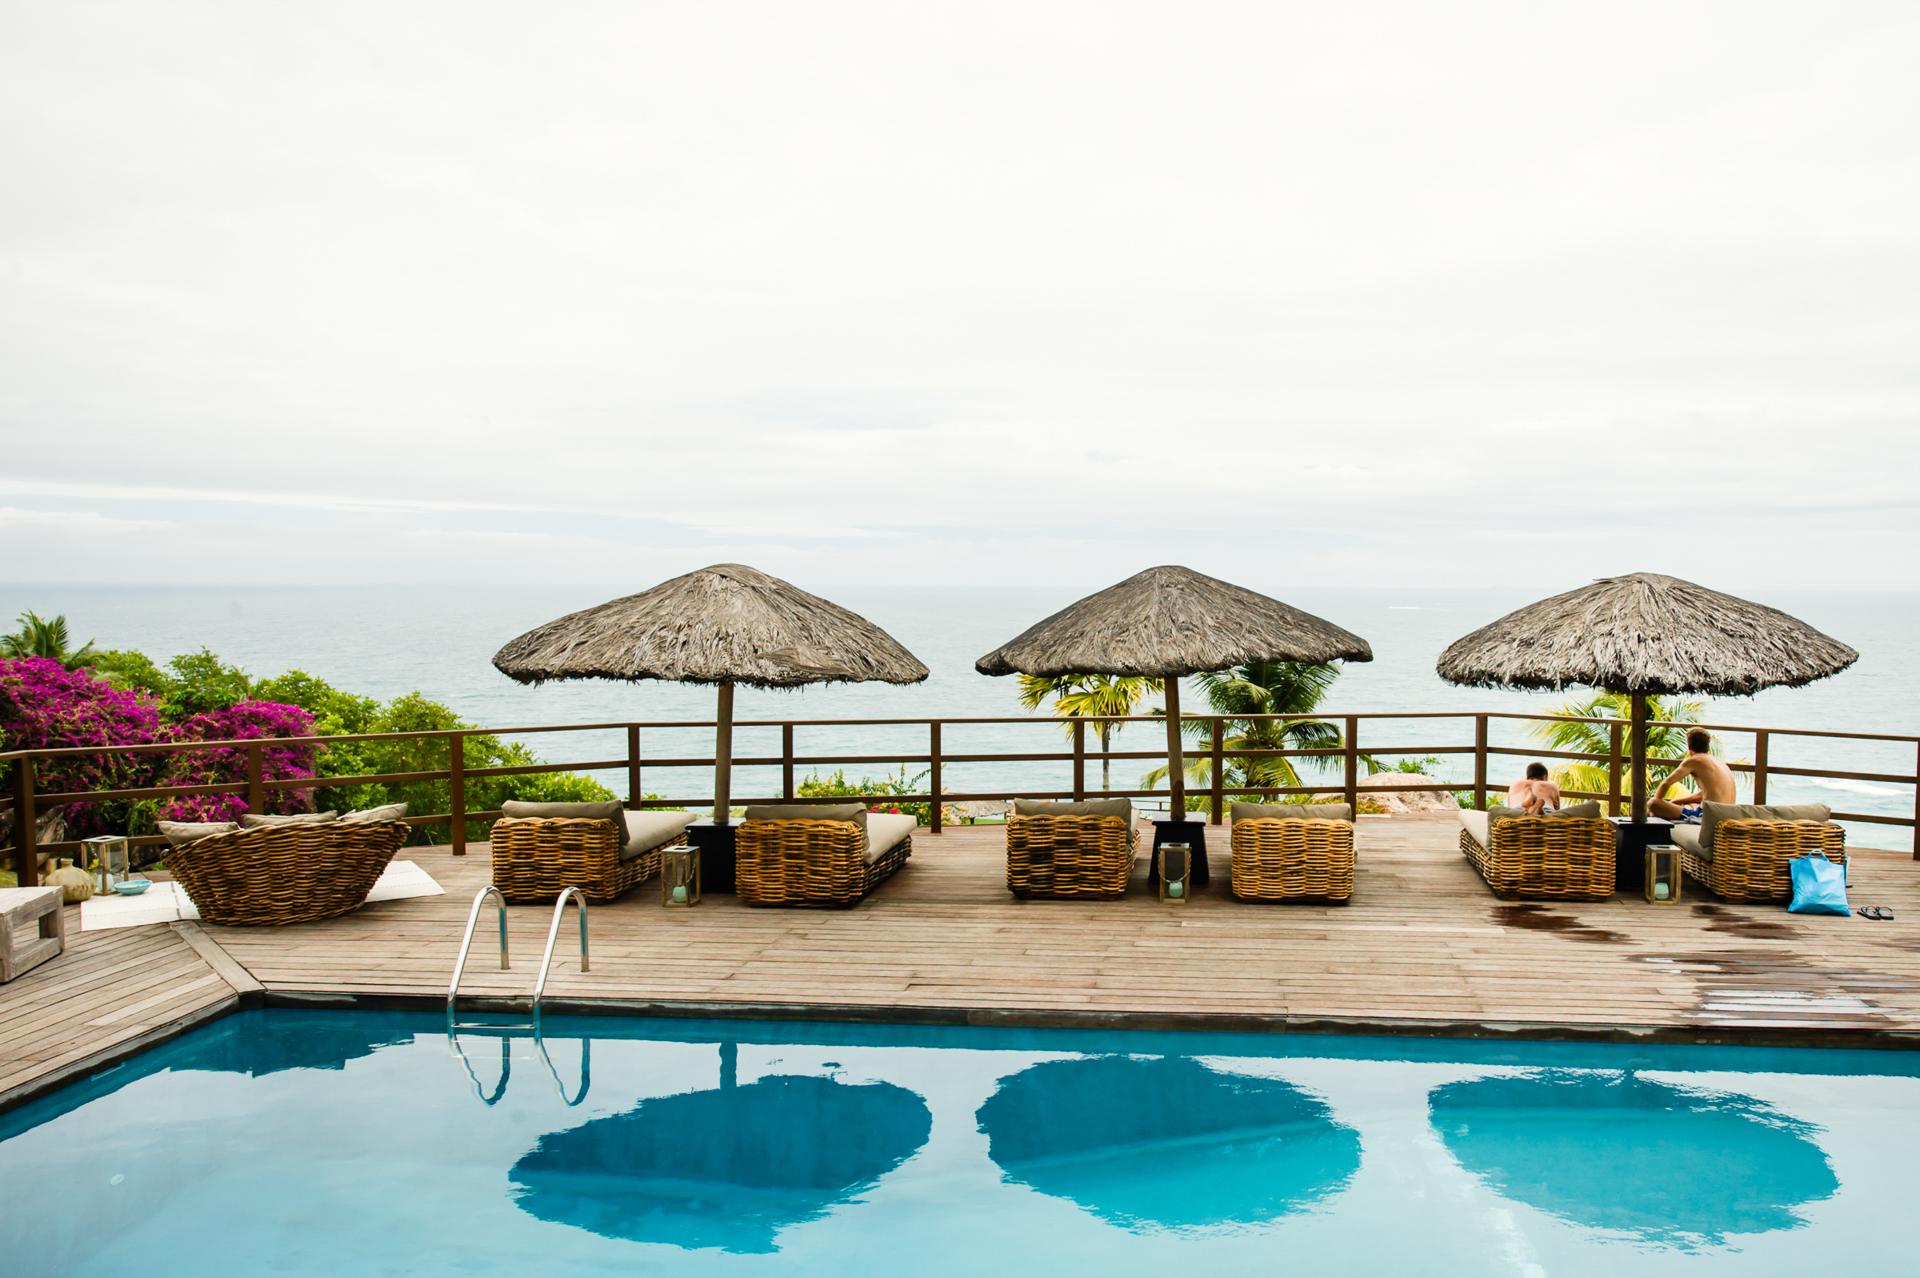 Praslin Island, Seychelles Wedding Photography | The groom and his brother take a breather next to the pool